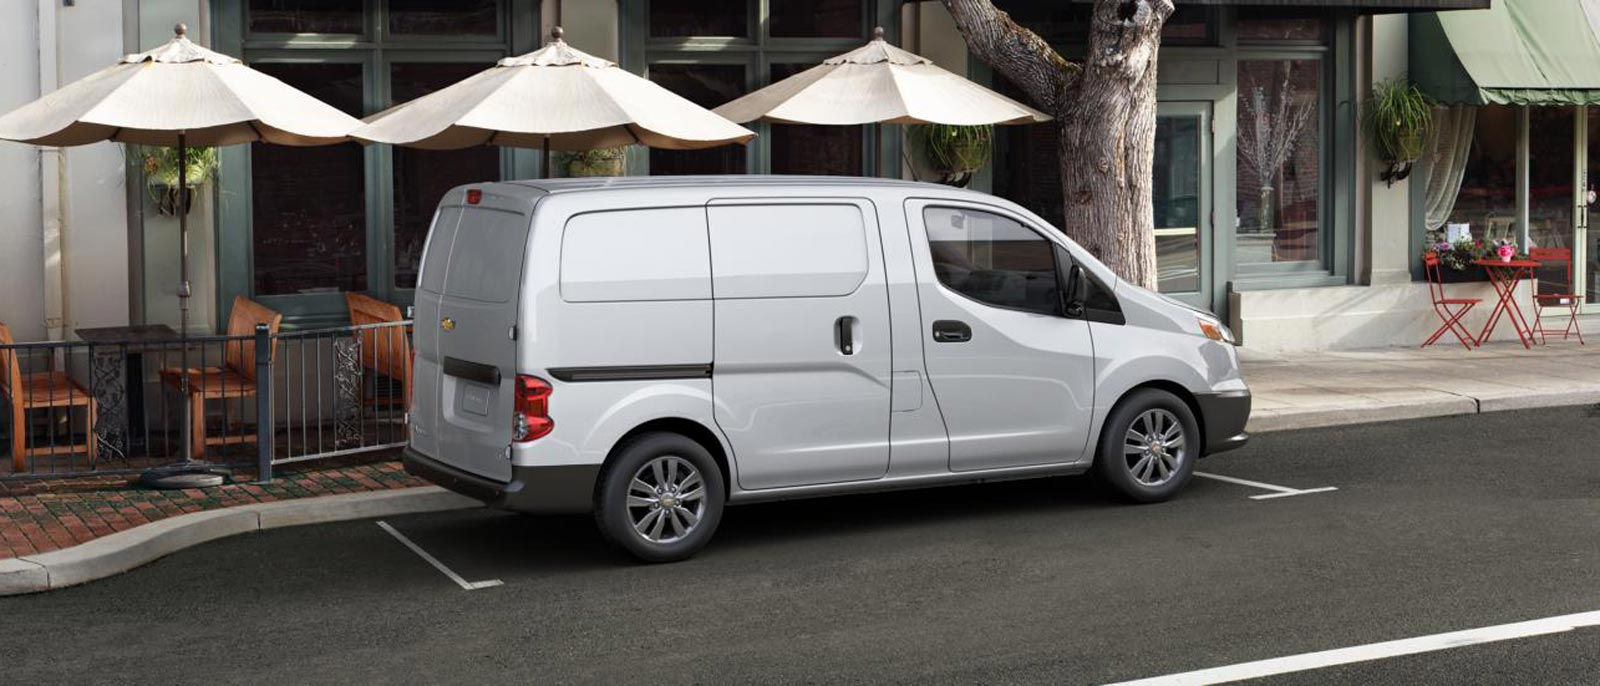 2015 Chevrolet City Express side view